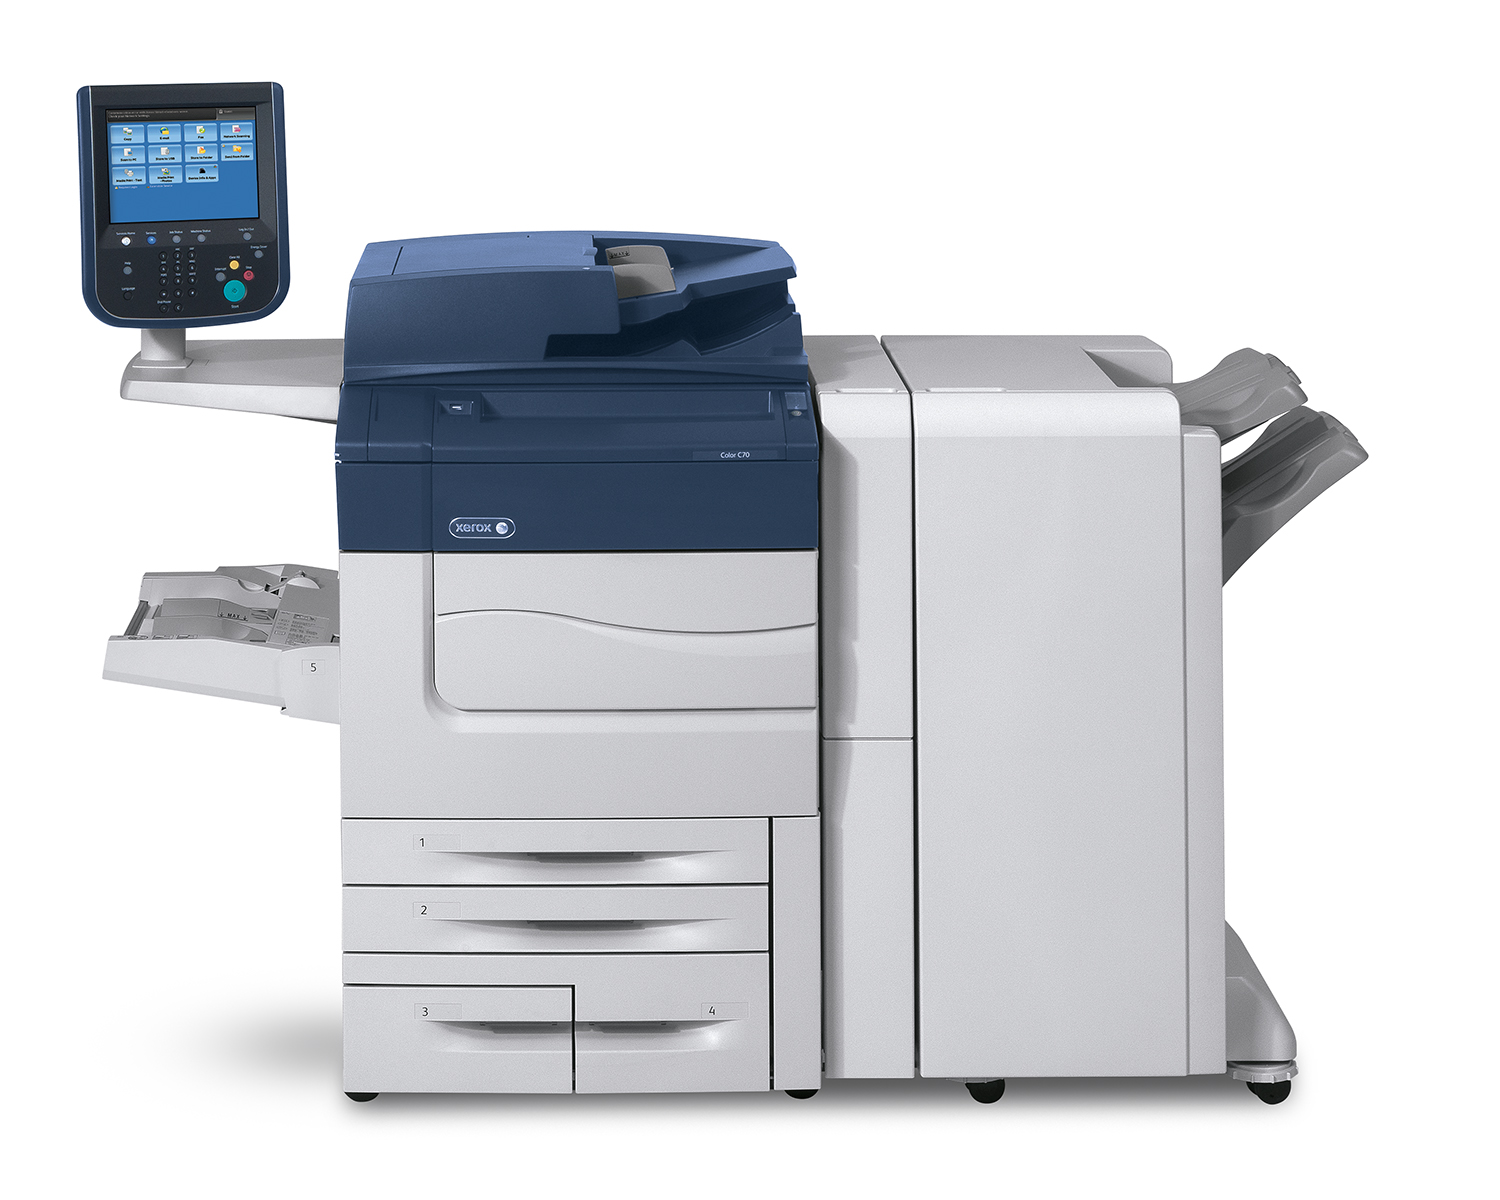 xerox 560 Lease Printer Copier Scanner Fax 56303, 56374, 56377, 56379